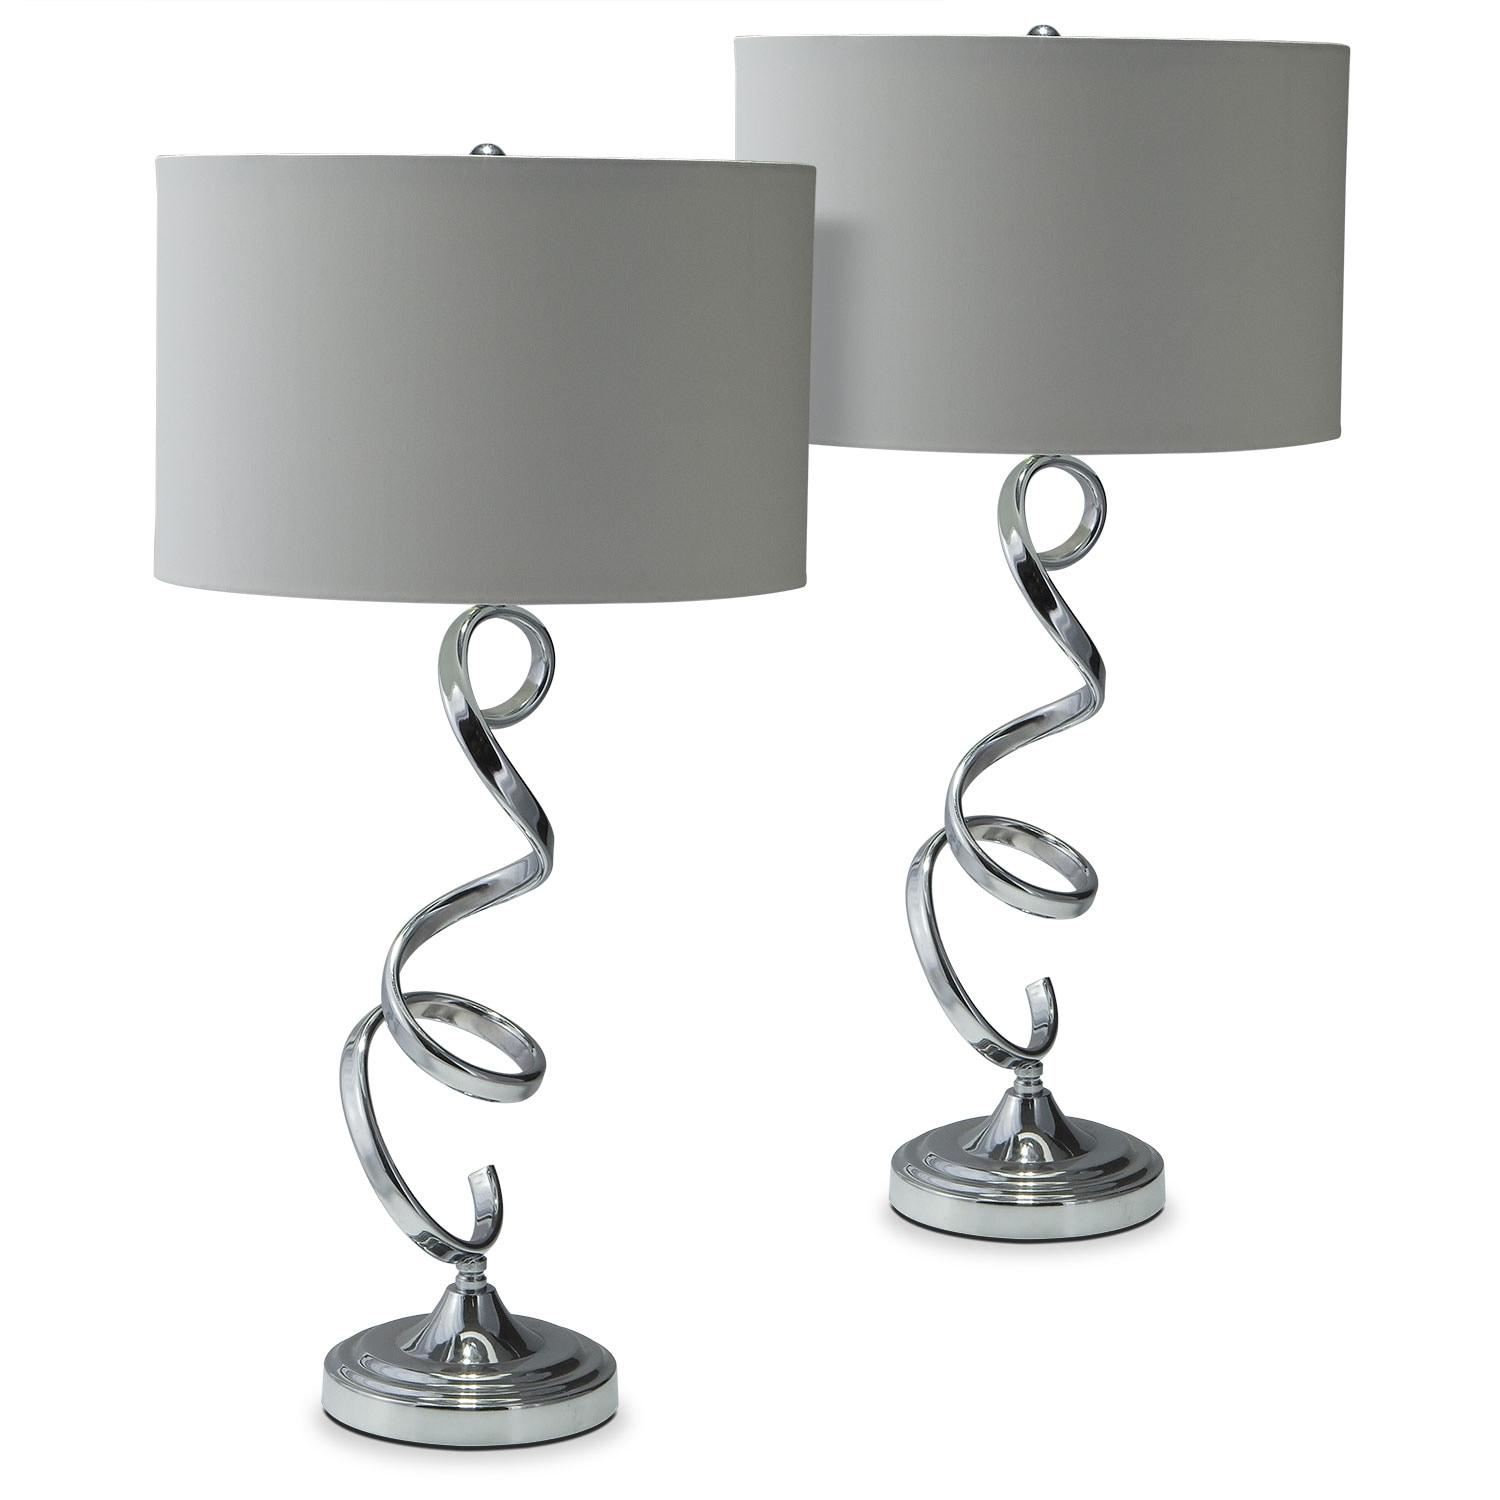 Home Accessories - Nickel Swirl 2-Pack Table Lamp Set